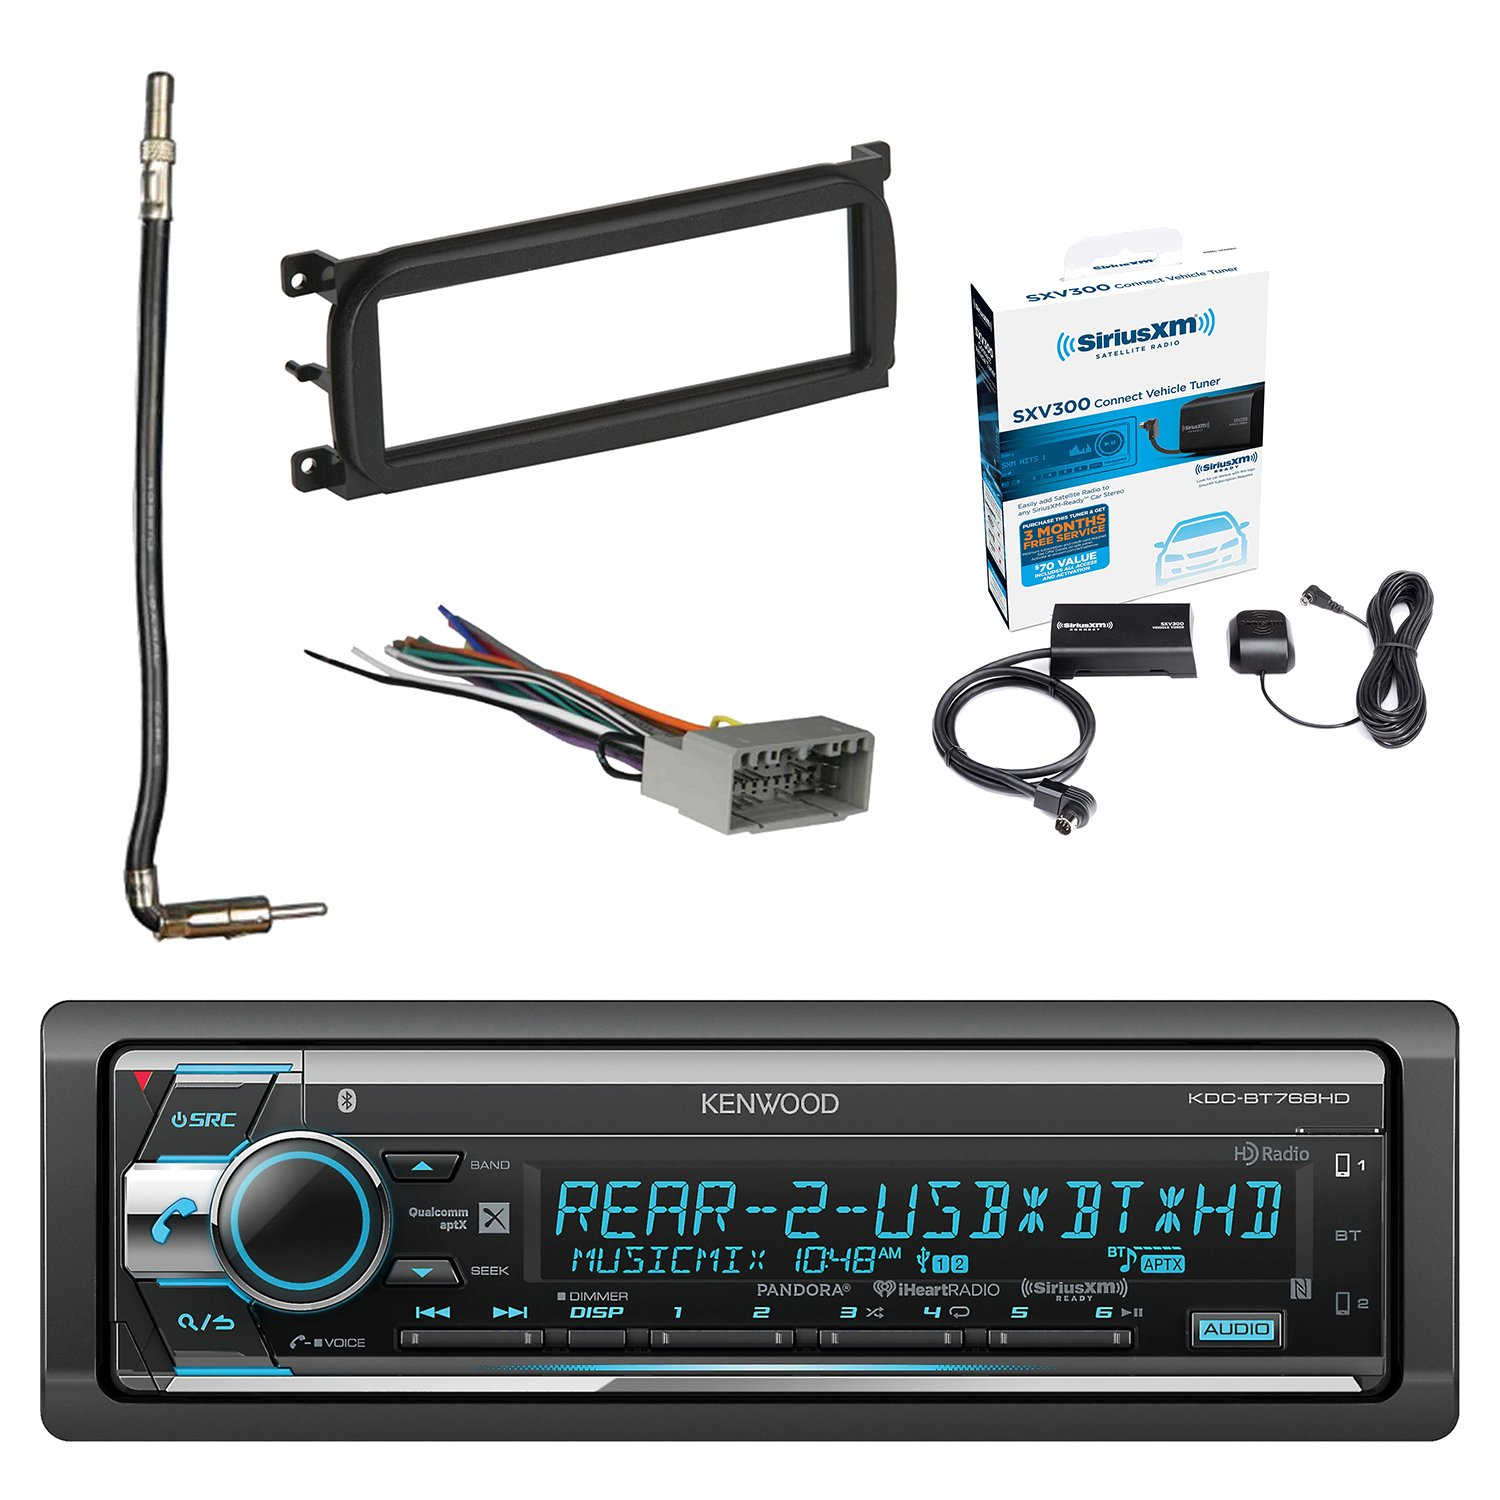 Kenwood Single Din CD/AM/FM Car Audio Receiver W/Bluetooth with SiriusXM Satellite Radio Connect Vehicle Tuner Kit, Metra Dash Kit For Chry/Dodge/Jeep, Radio Wiring Harness & Antenna Adapter Cable